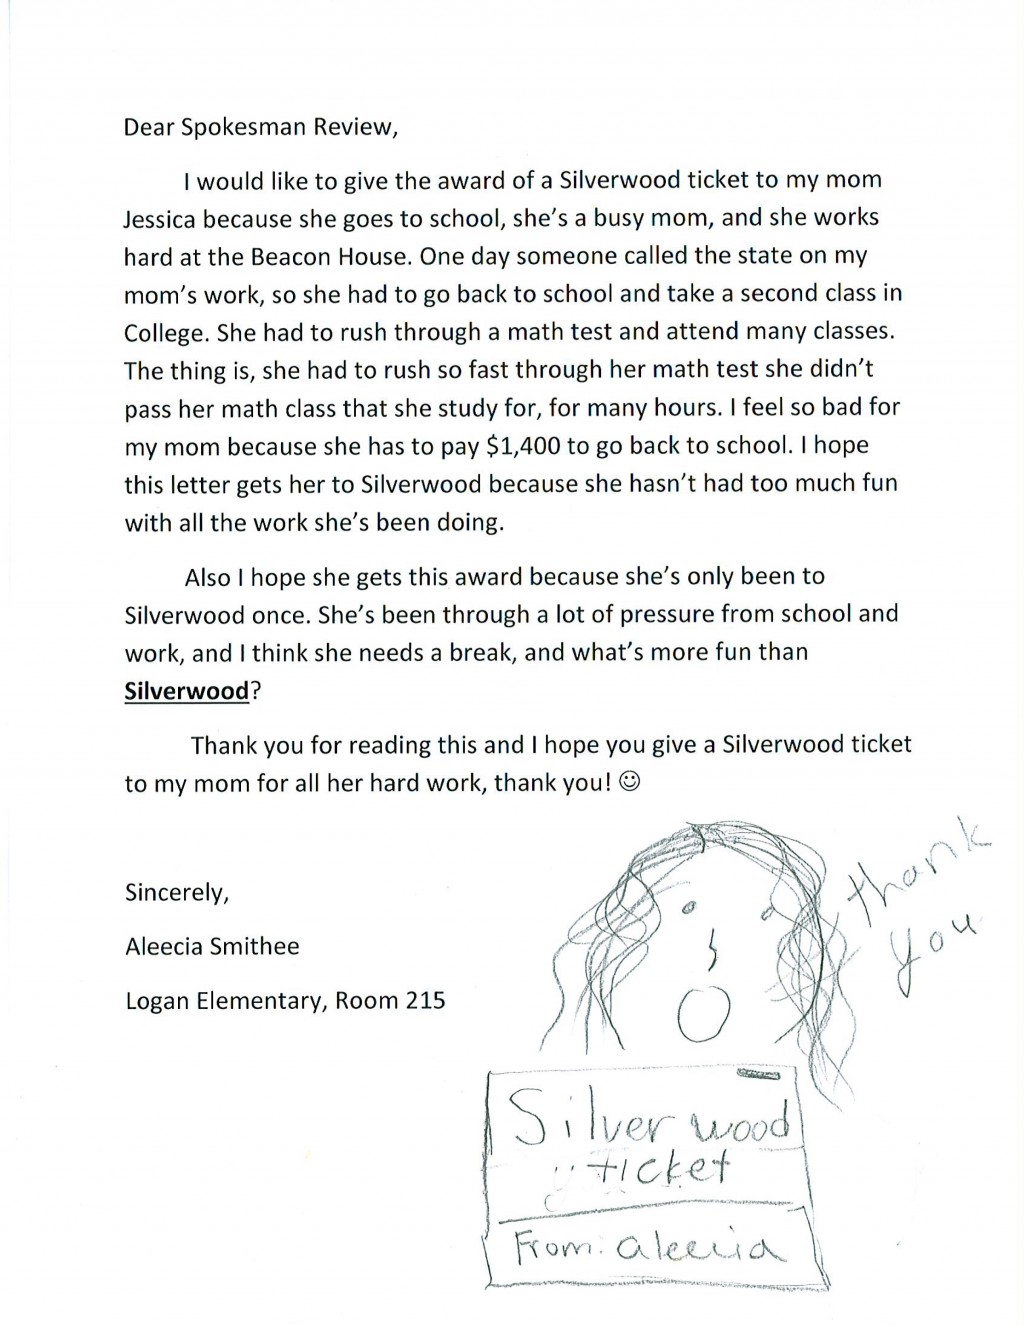 023 Essay Example Aleecia Rush Best Review My Reviews Large